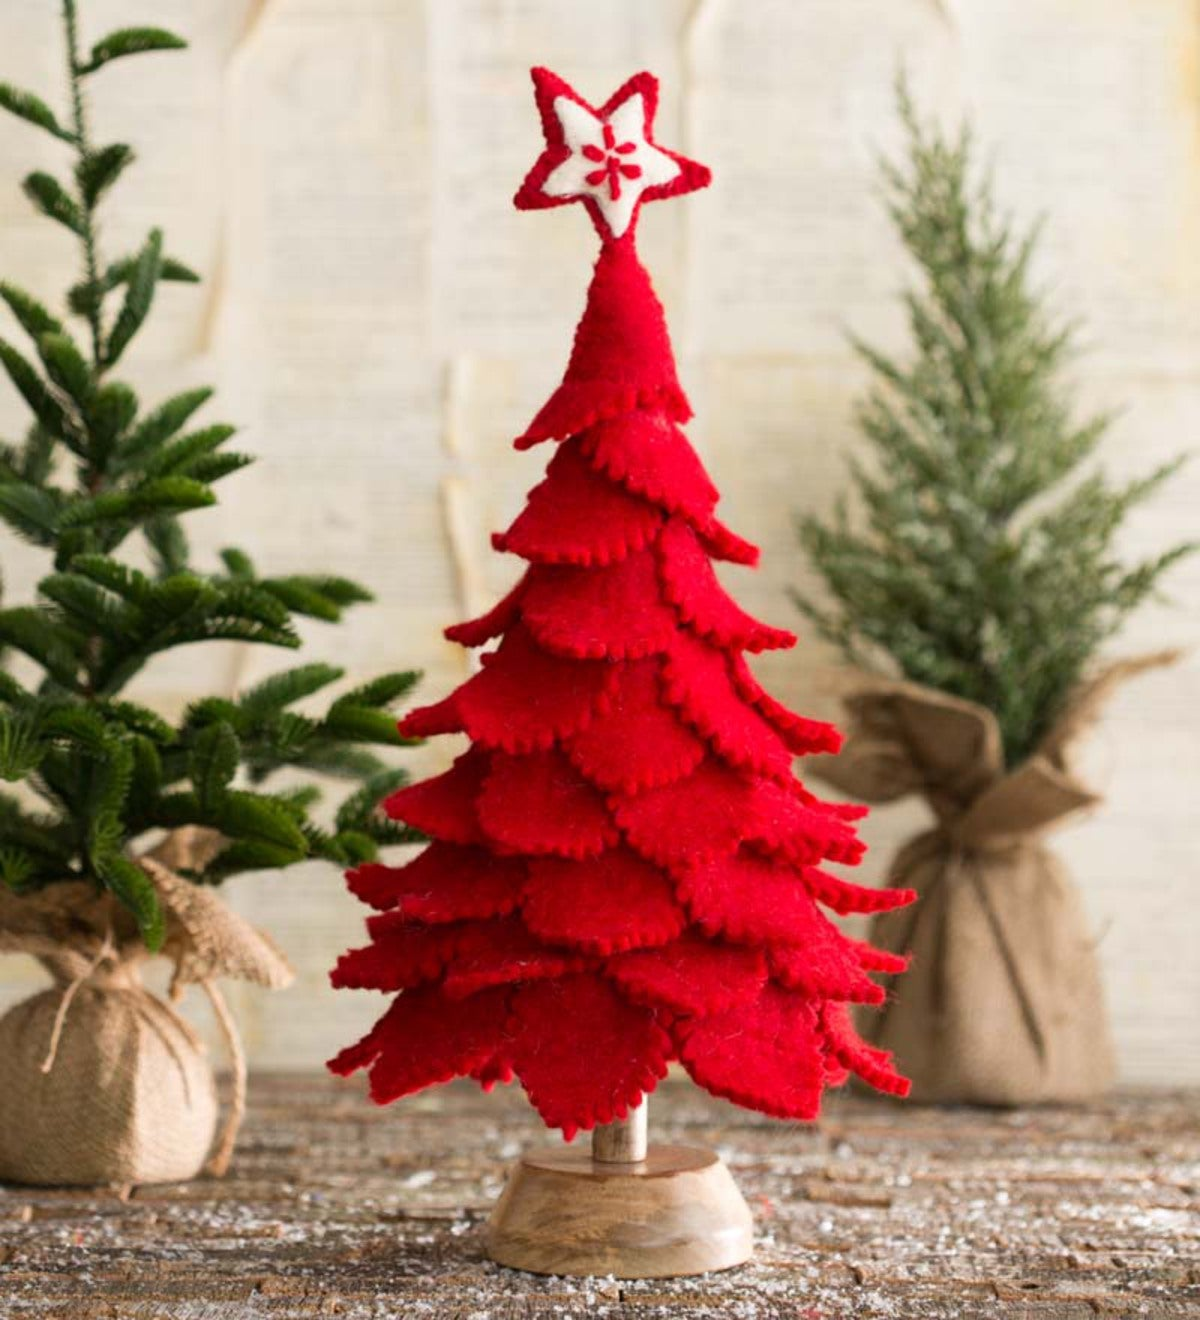 Handcrafted Felt Christmas Tree - Red